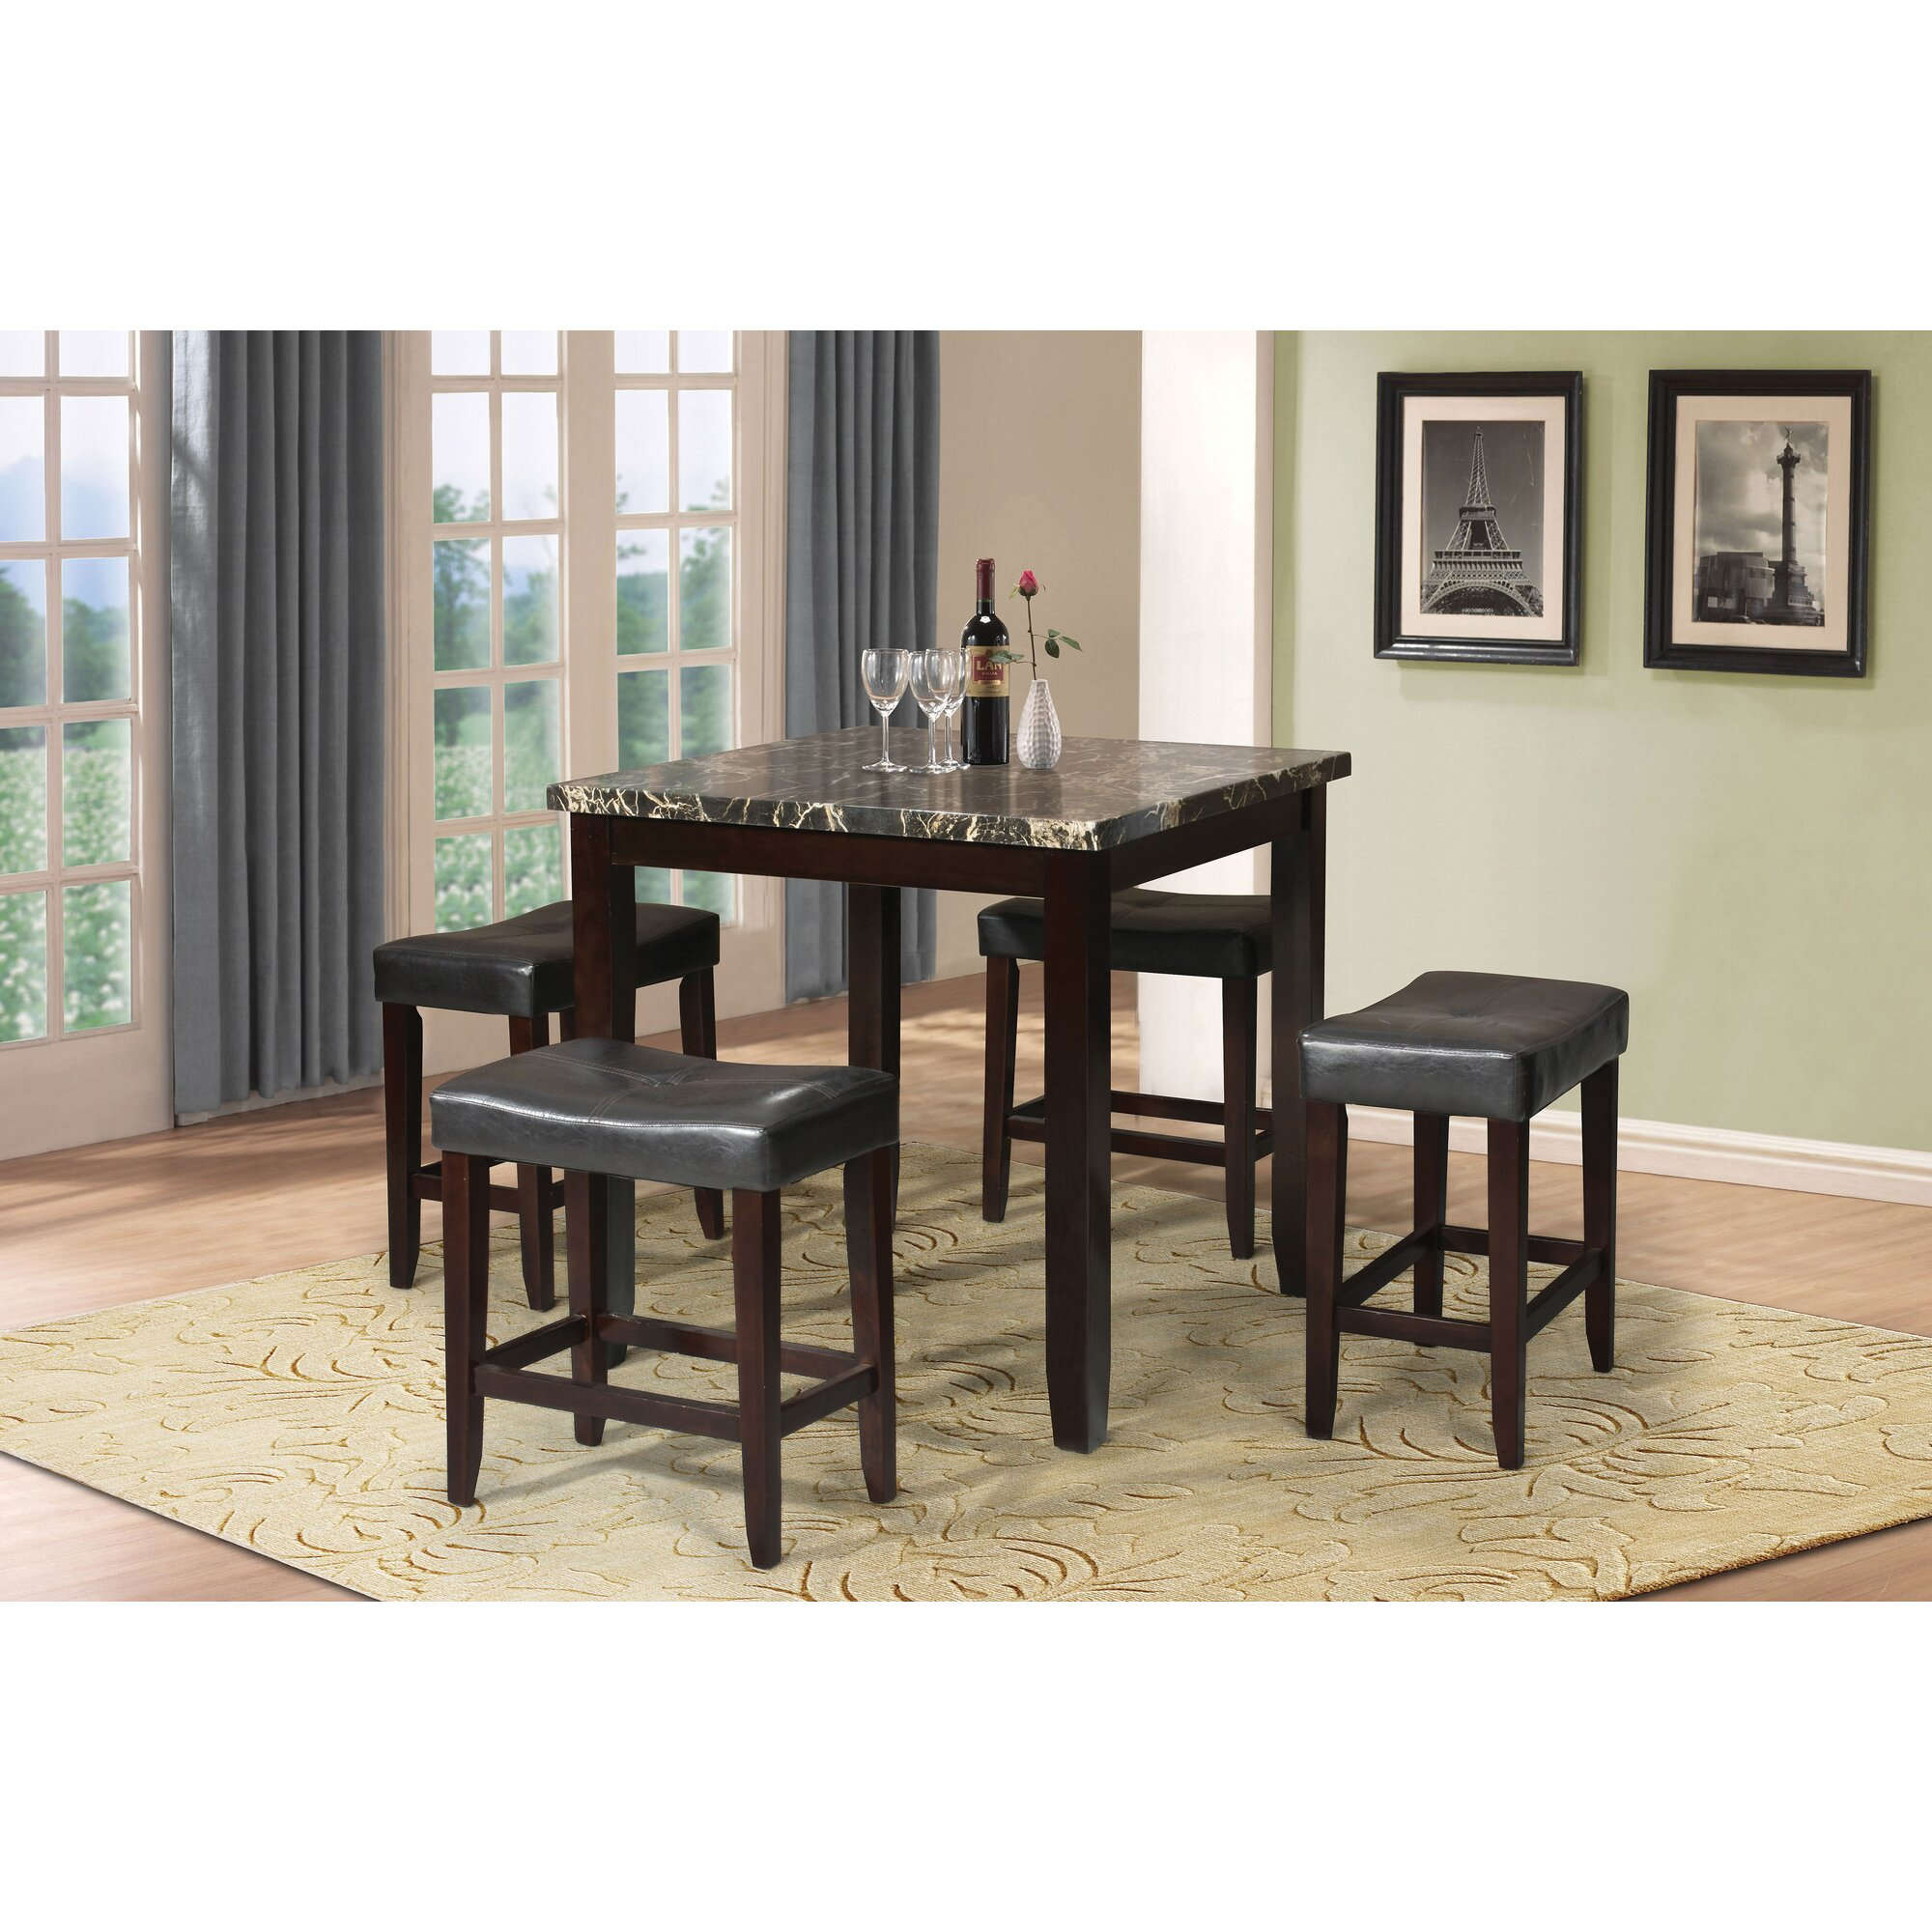 latitude run dehaven 5 piece counter height dining set